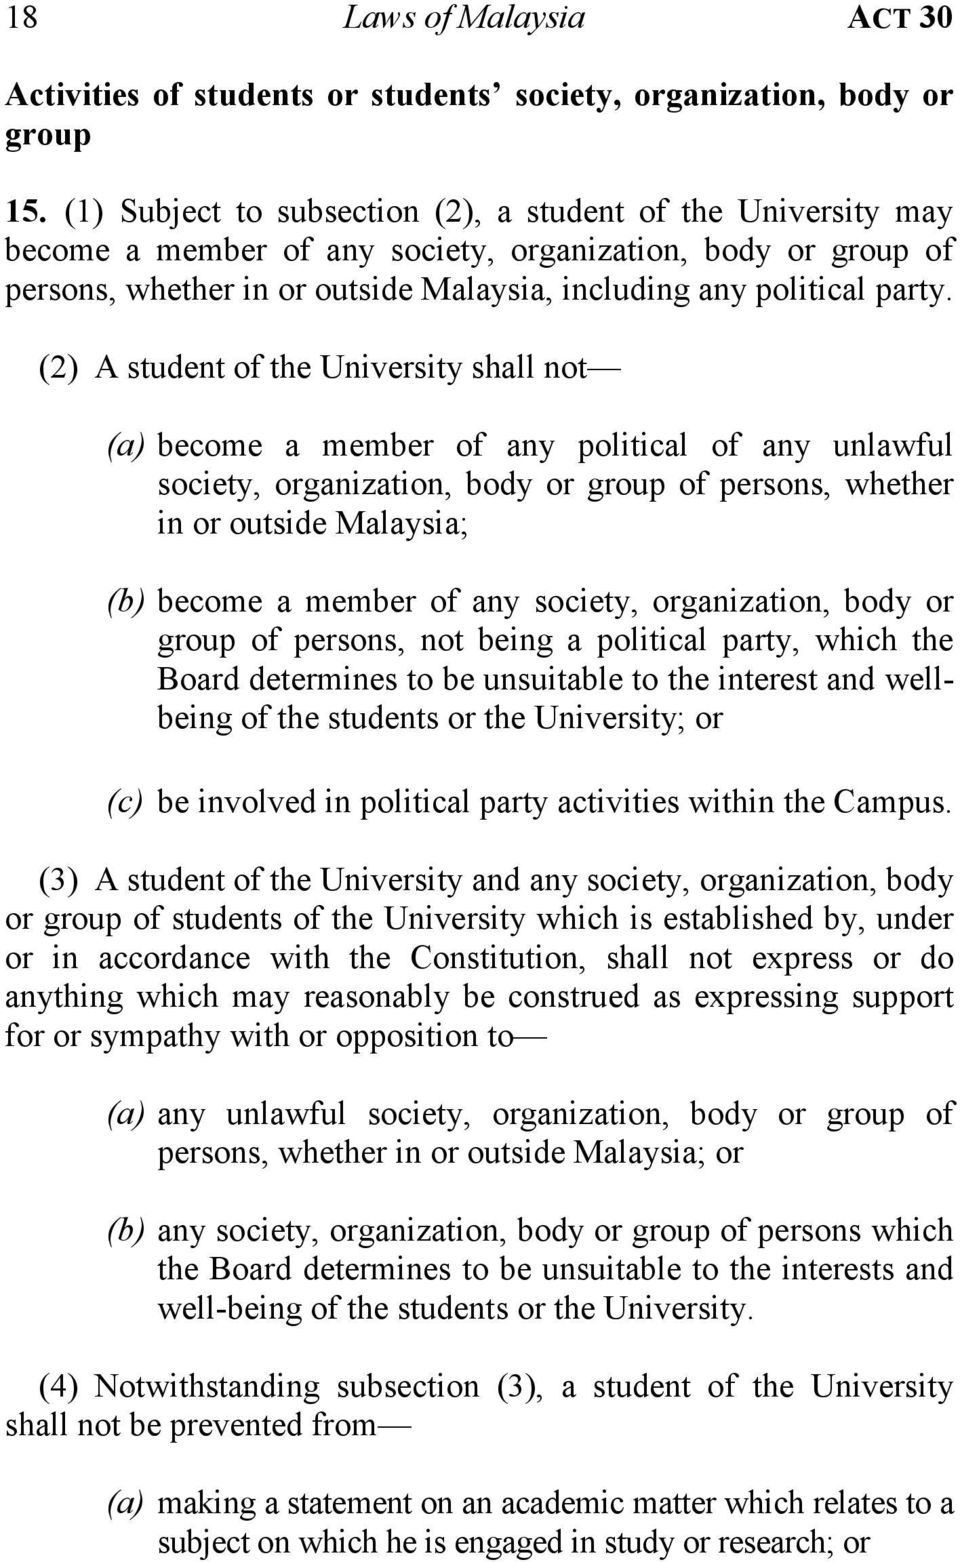 (2) A student of the University shall not (a) become a member of any political of any unlawful society, organization, body or group of persons, whether in or outside Malaysia; (b) become a member of